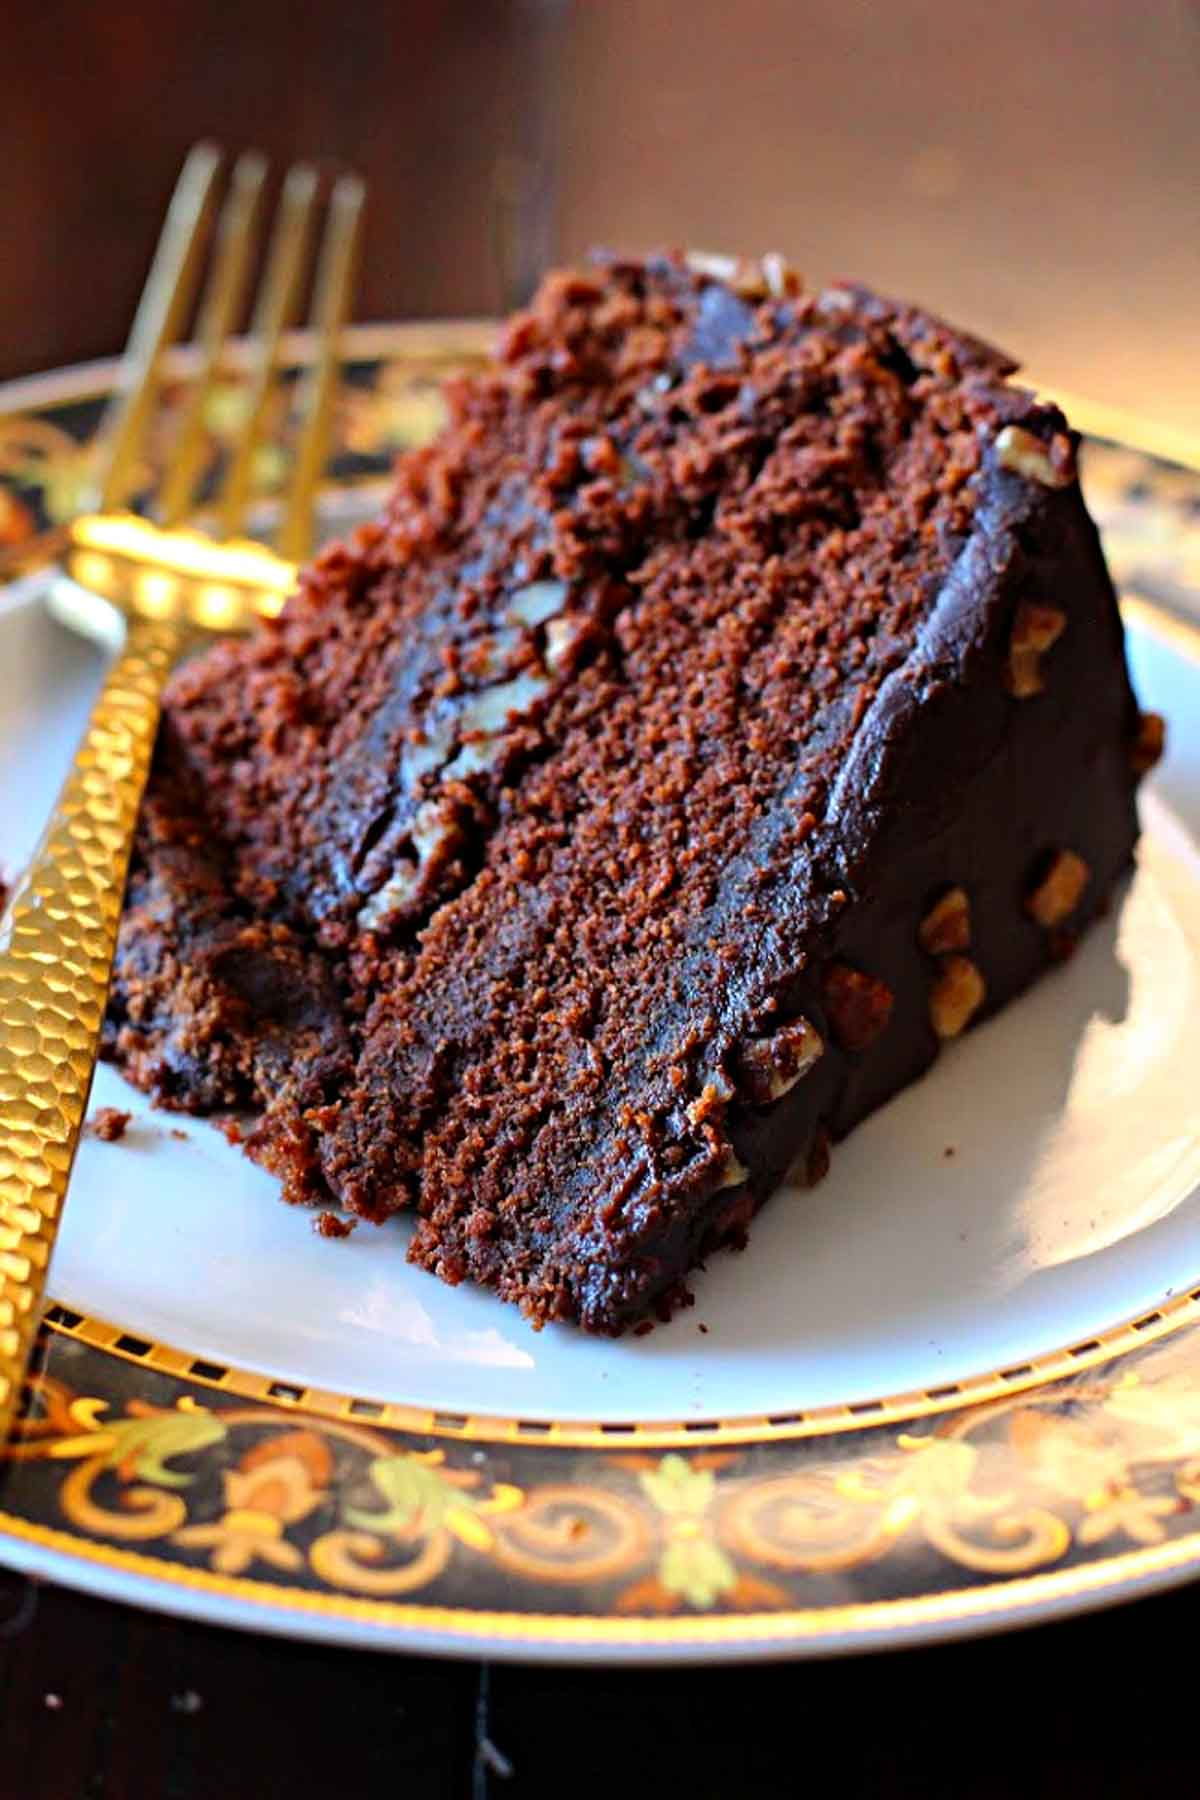 A slice of Chile chocolate cake with bourbon chocolate cake served on a Versace dessert plate with a gold flat ware fork